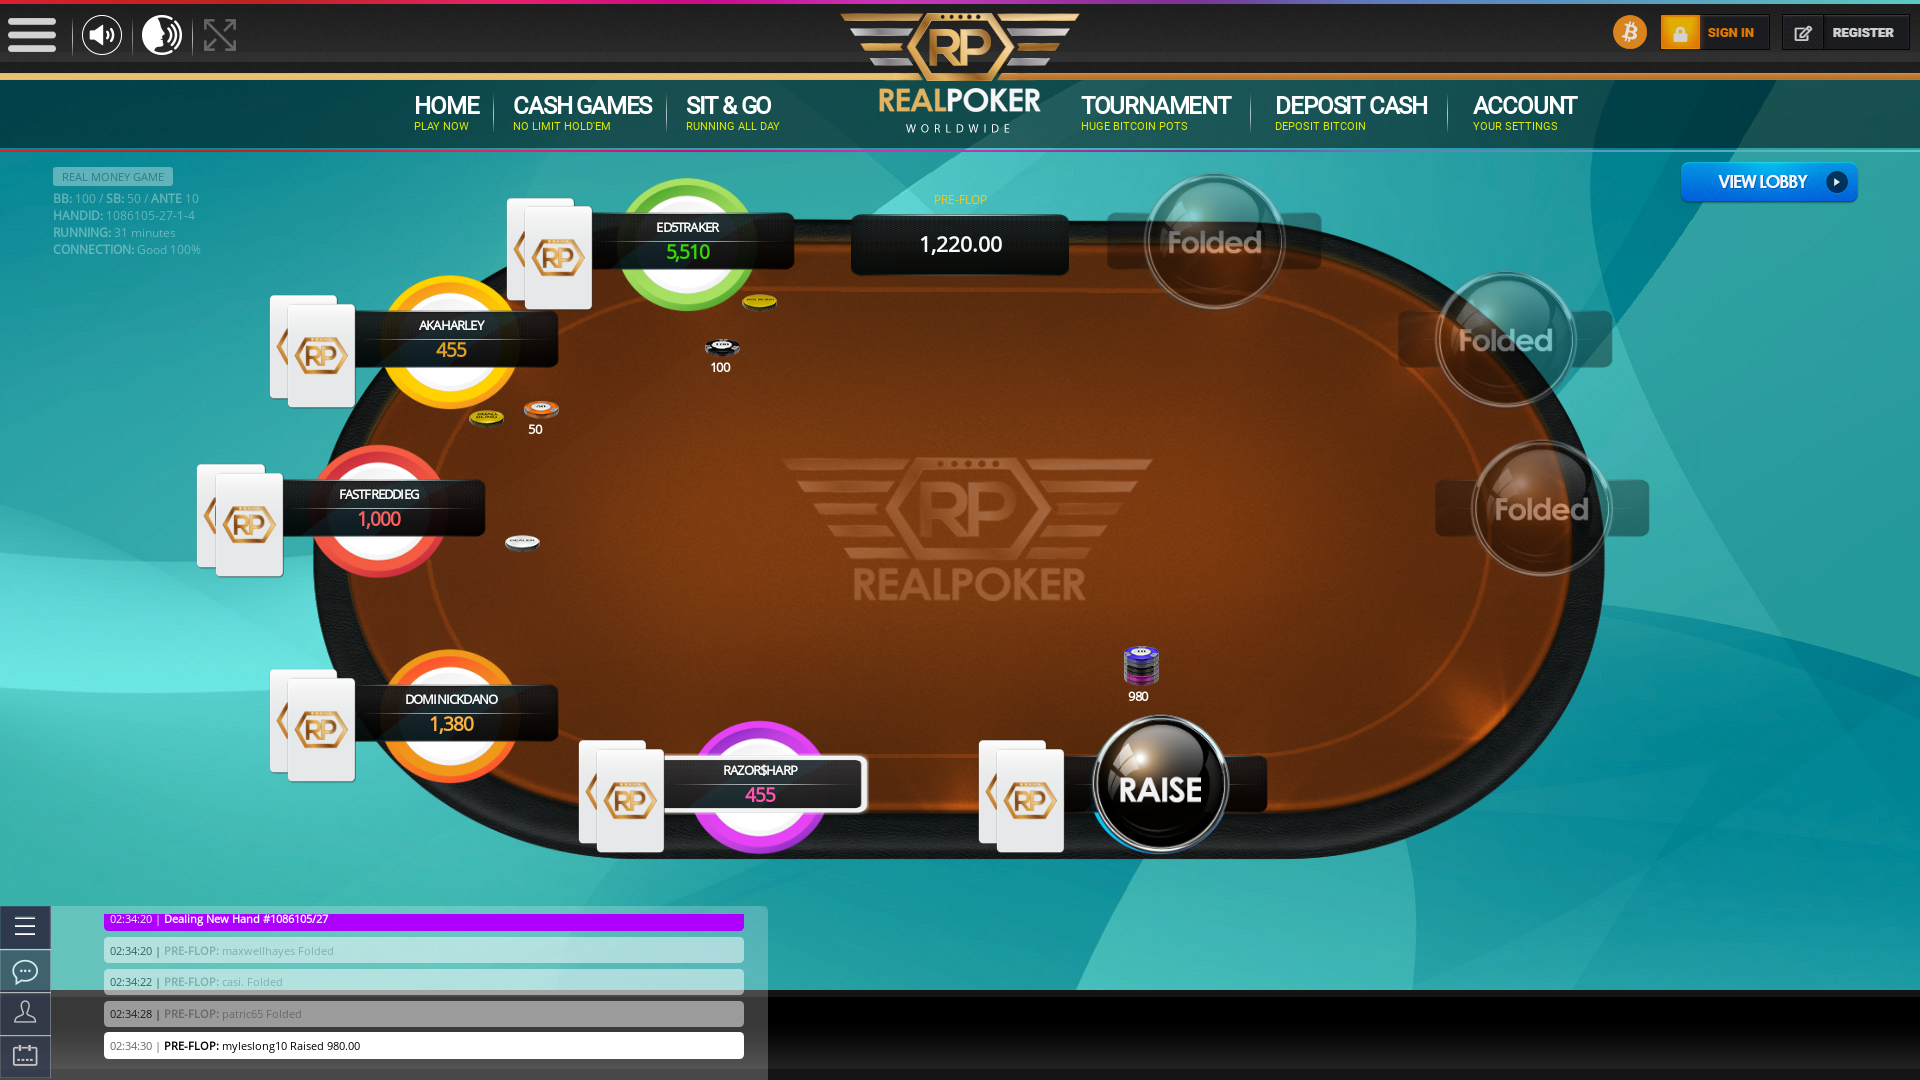 Real poker on a 10 player table in the 3 game